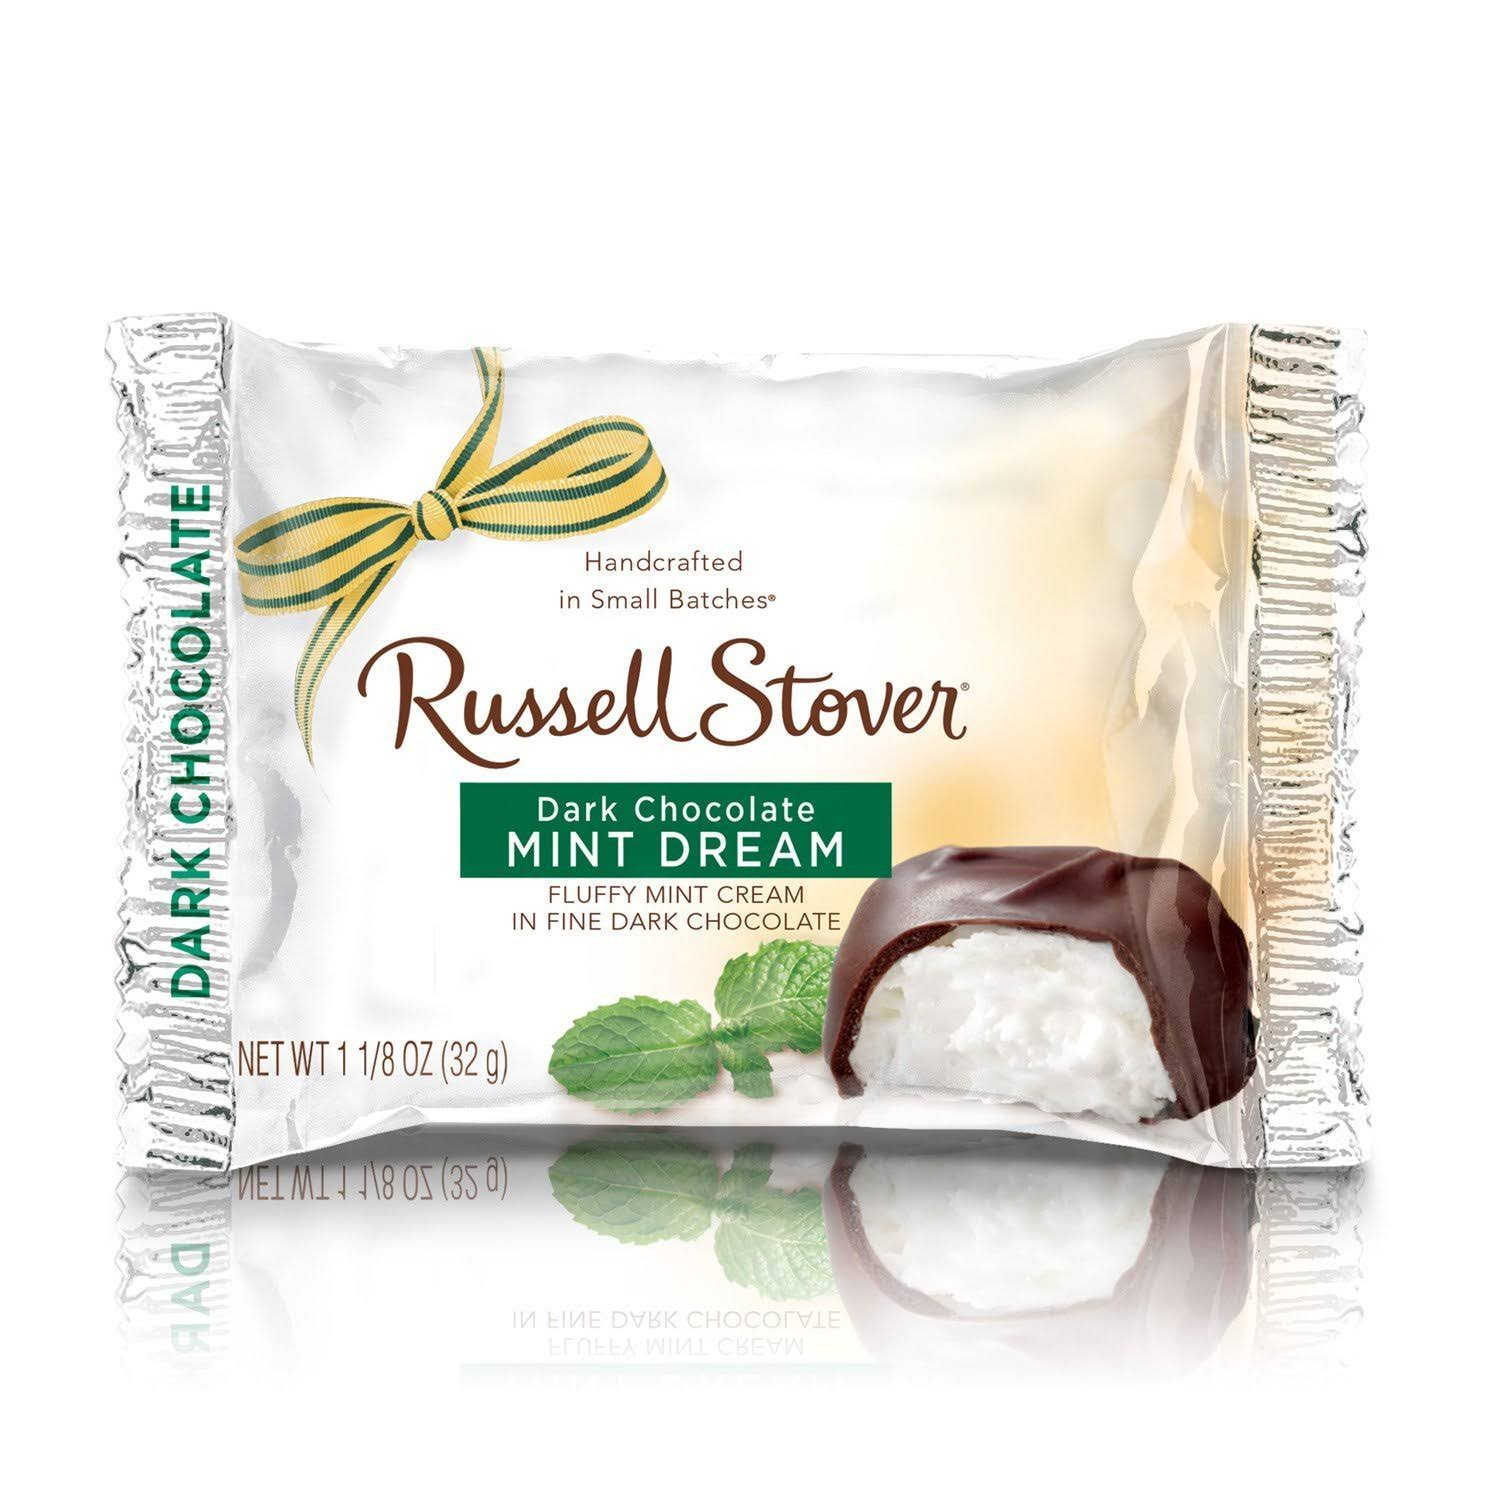 Russell Stover Dark Chocolate Mint Dream - 1.125 oz